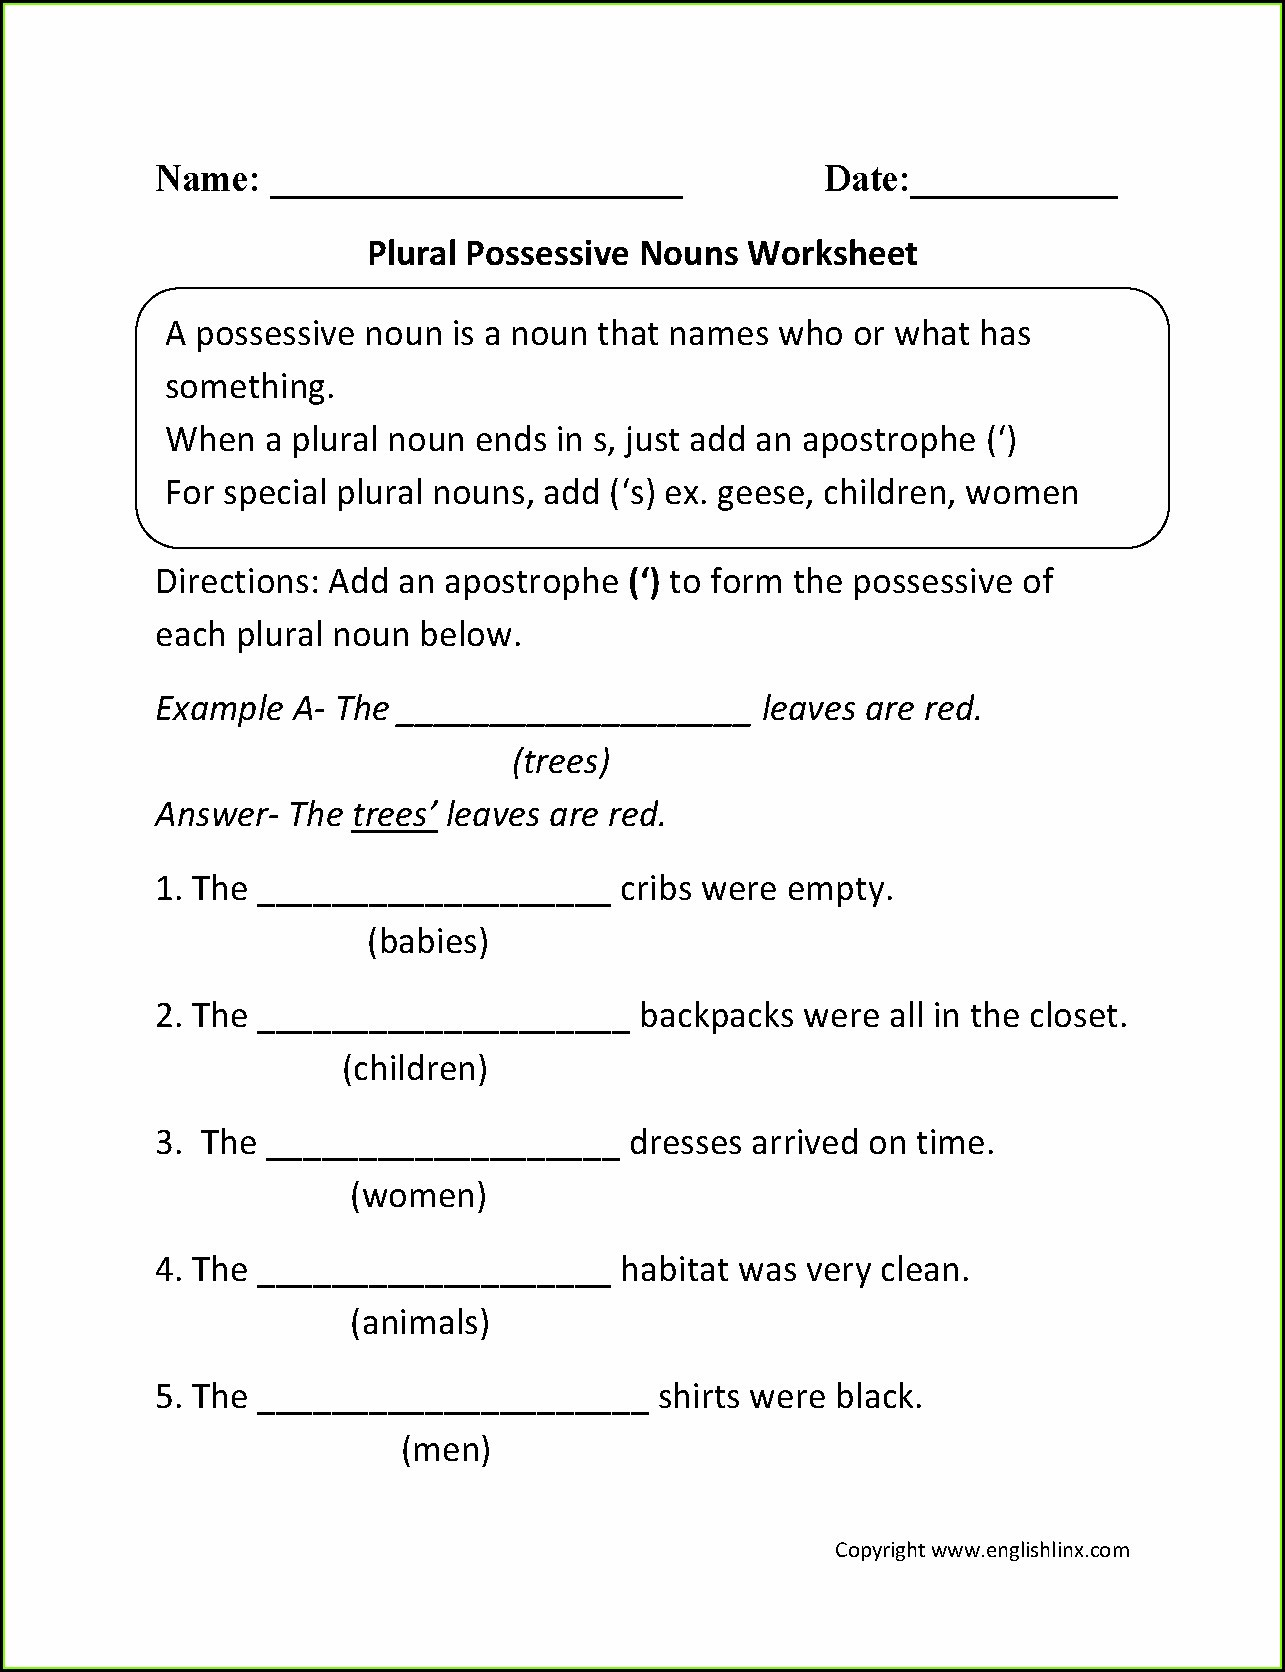 Pronoun Worksheets 6th Grade Possessive Pronouns Worksheet 5th Grade